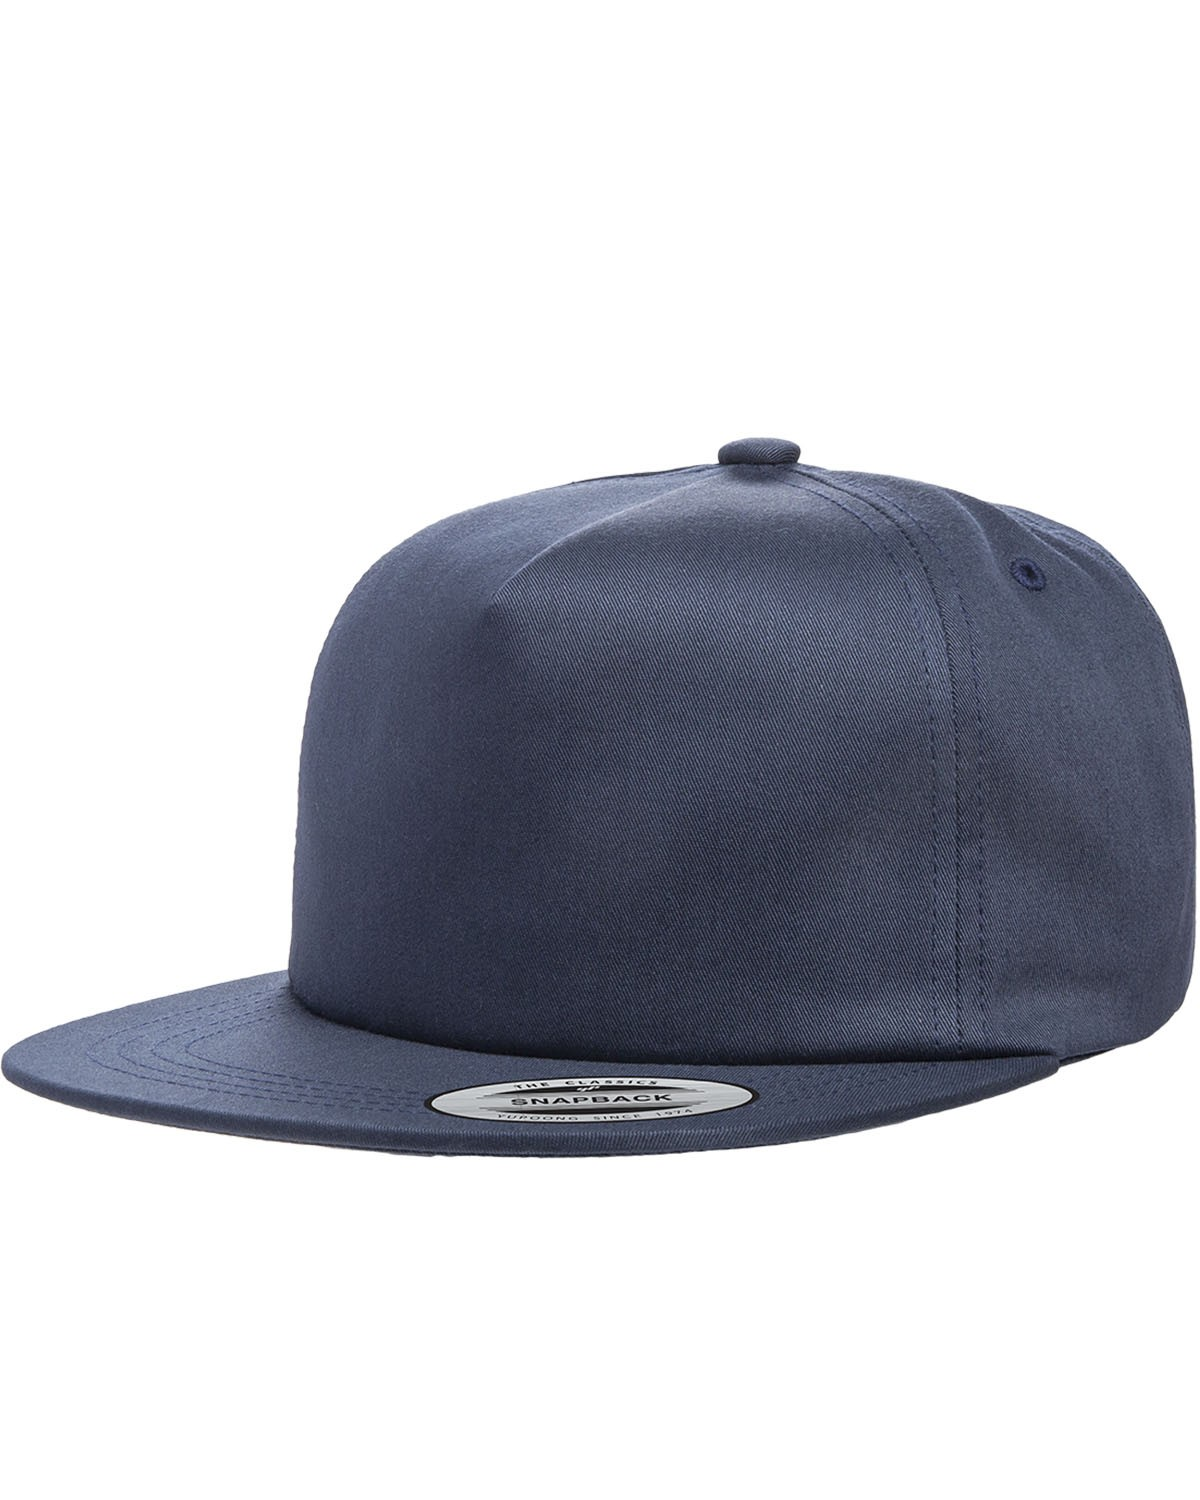 Y6502 Yupoong NAVY